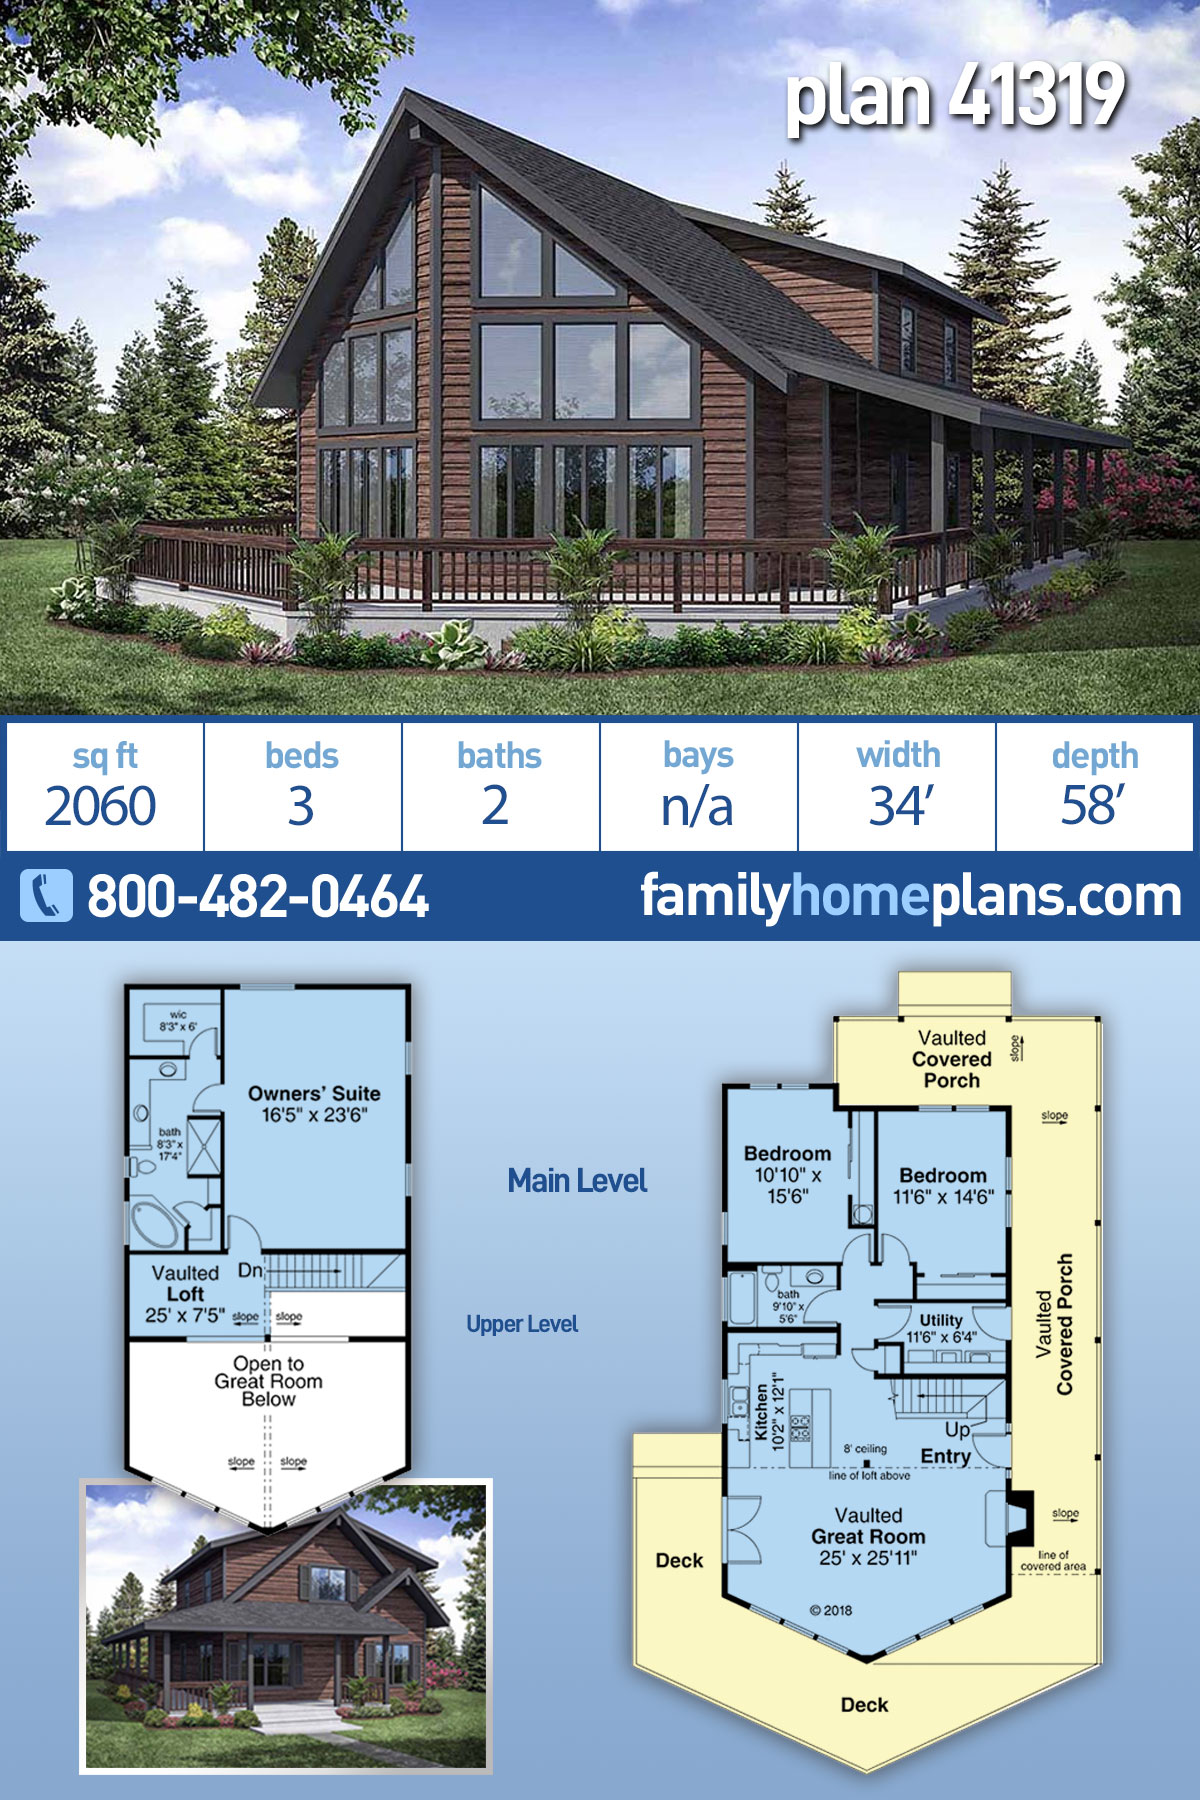 Cabin, Contemporary, Narrow Lot House Plan 41319 with 3 Beds, 2 Baths